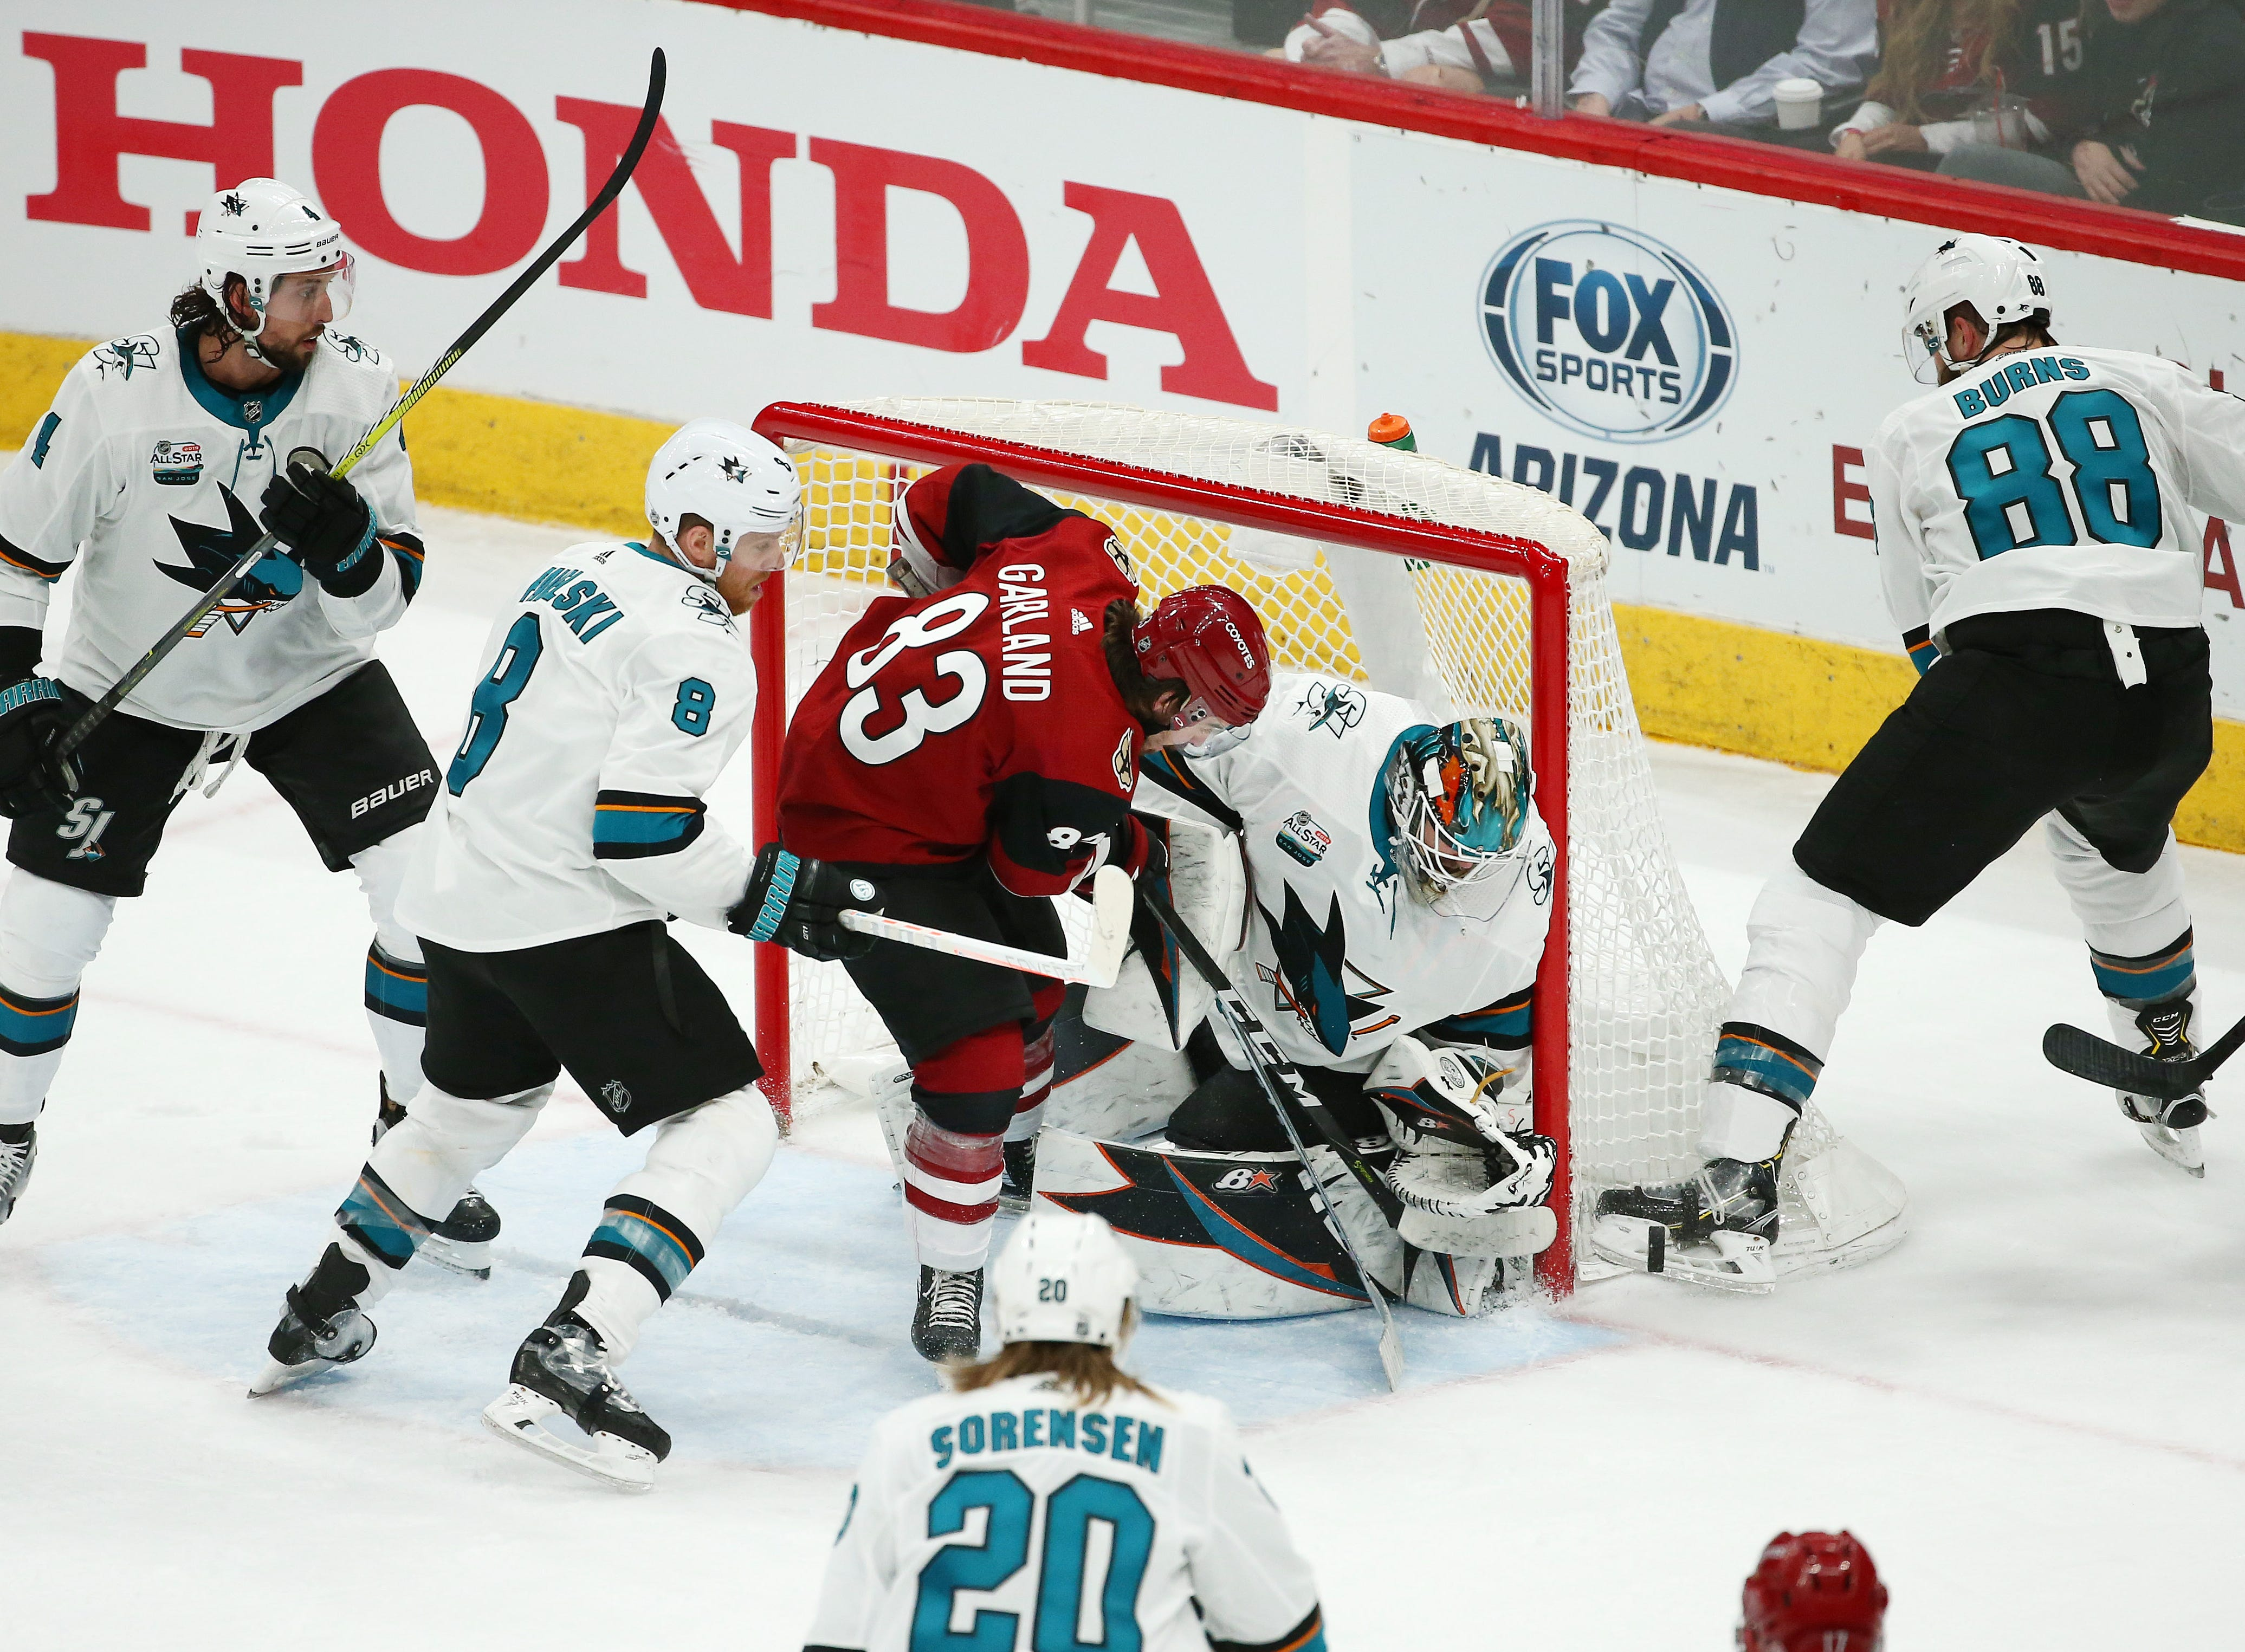 Arizona Coyotes' Conor Garland (83) battles for the puck with San Jose Sharks goalie Aaron Dell in the 1st period on Jan. 16 at Gila River Arena.